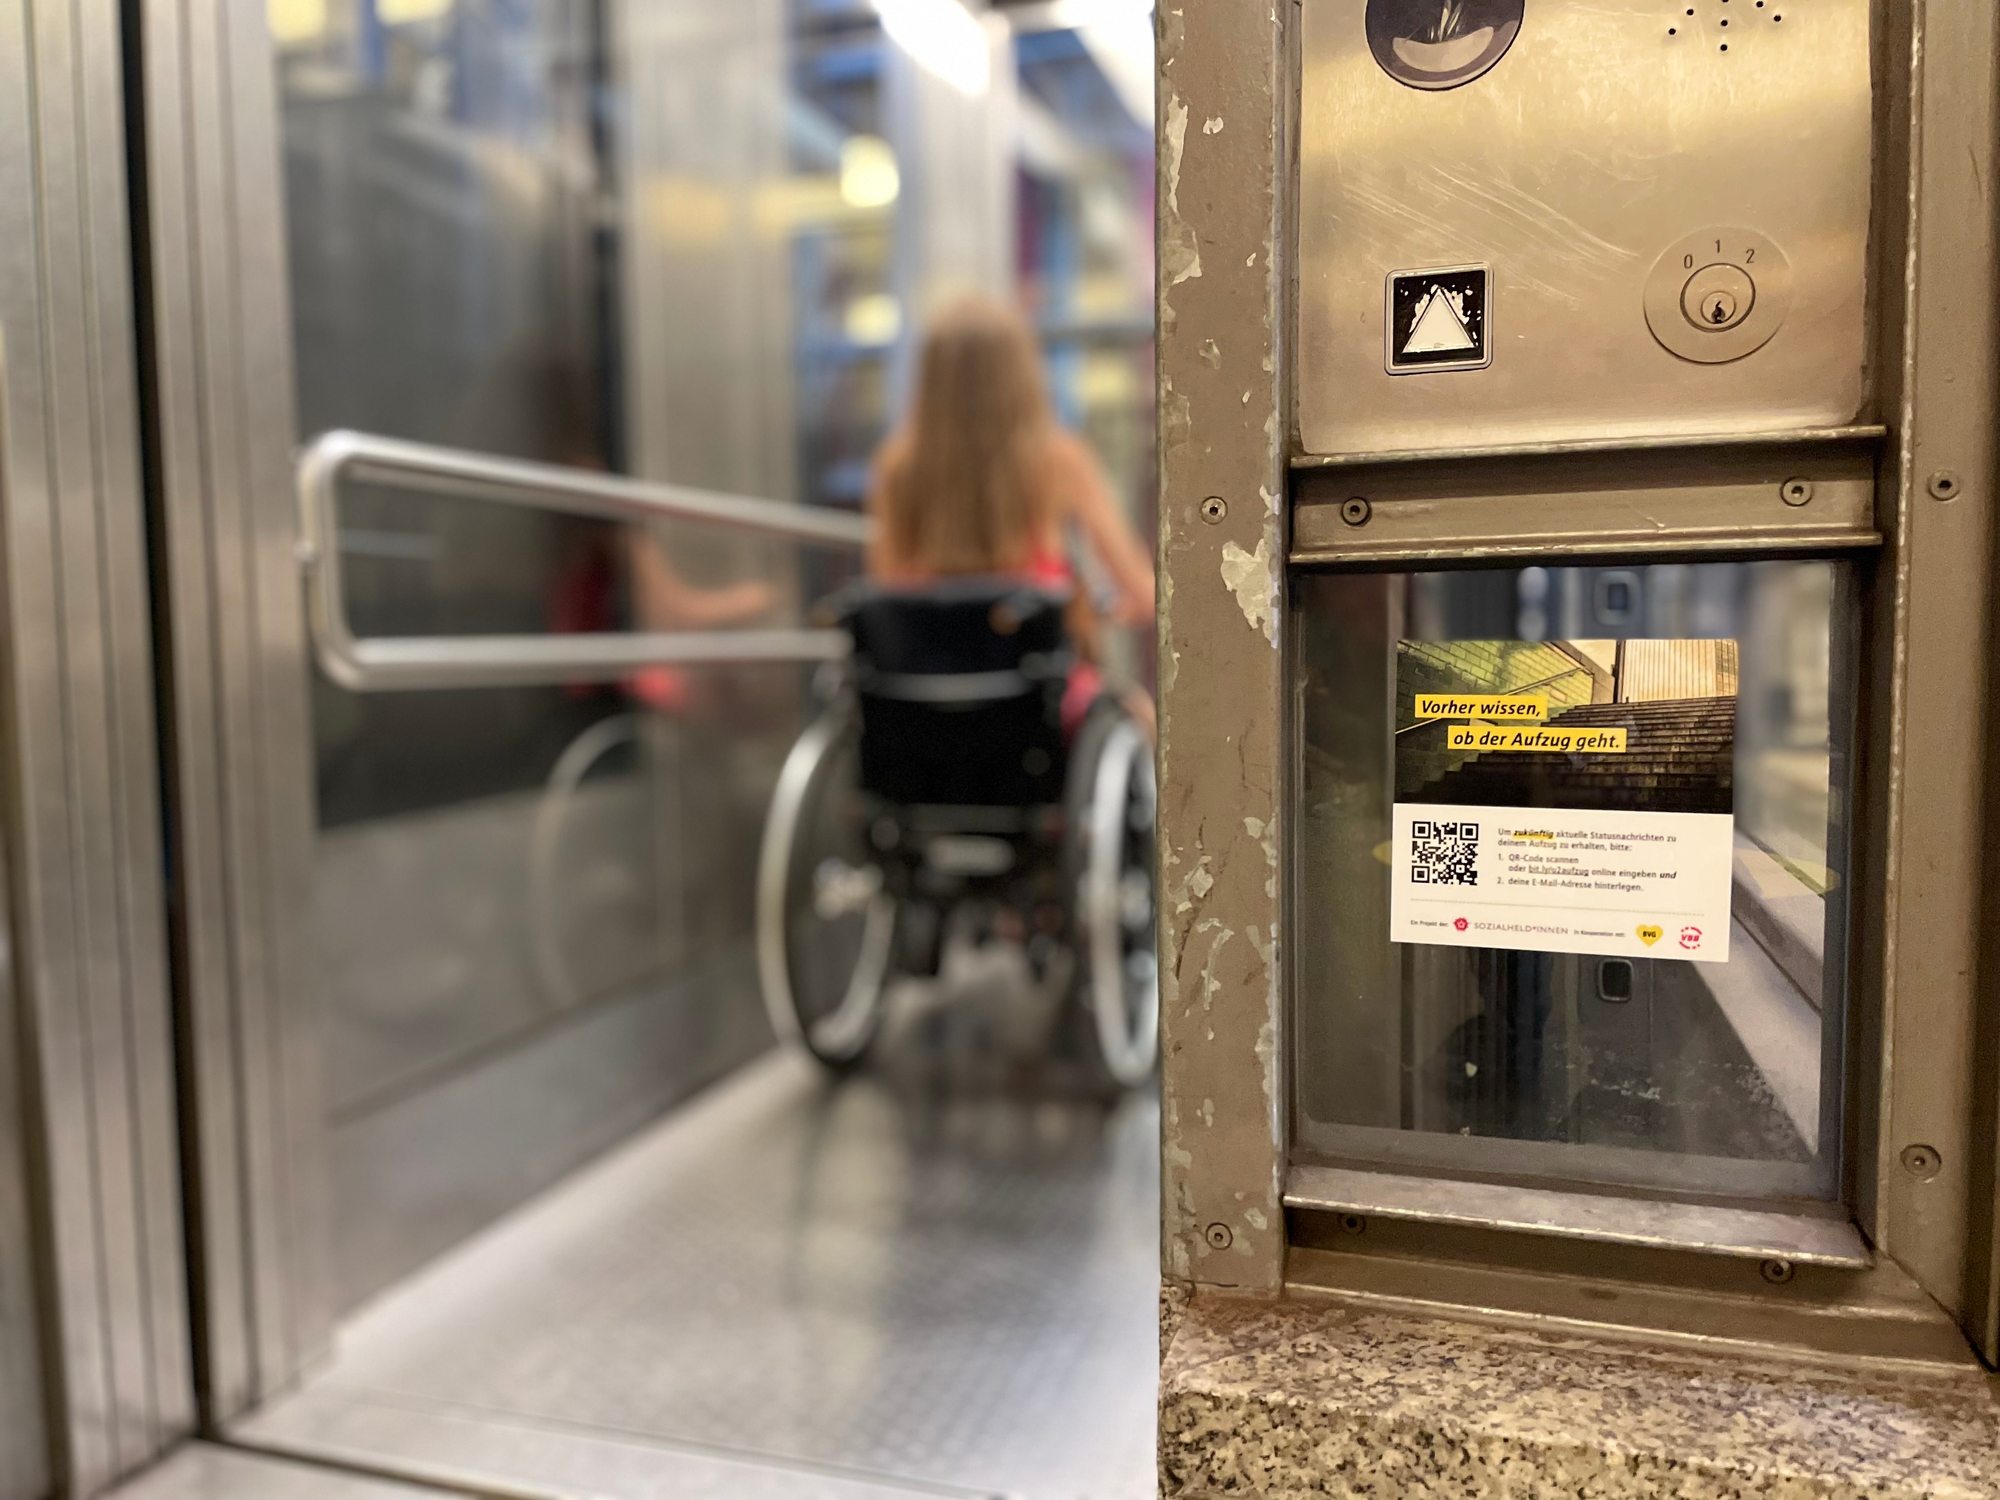 A person using a wheelchair right after entering an elevator. Right under the elevator's controls, a sticker with a QR code advertises that you can get notifications from this elevator if there is a service disruption.